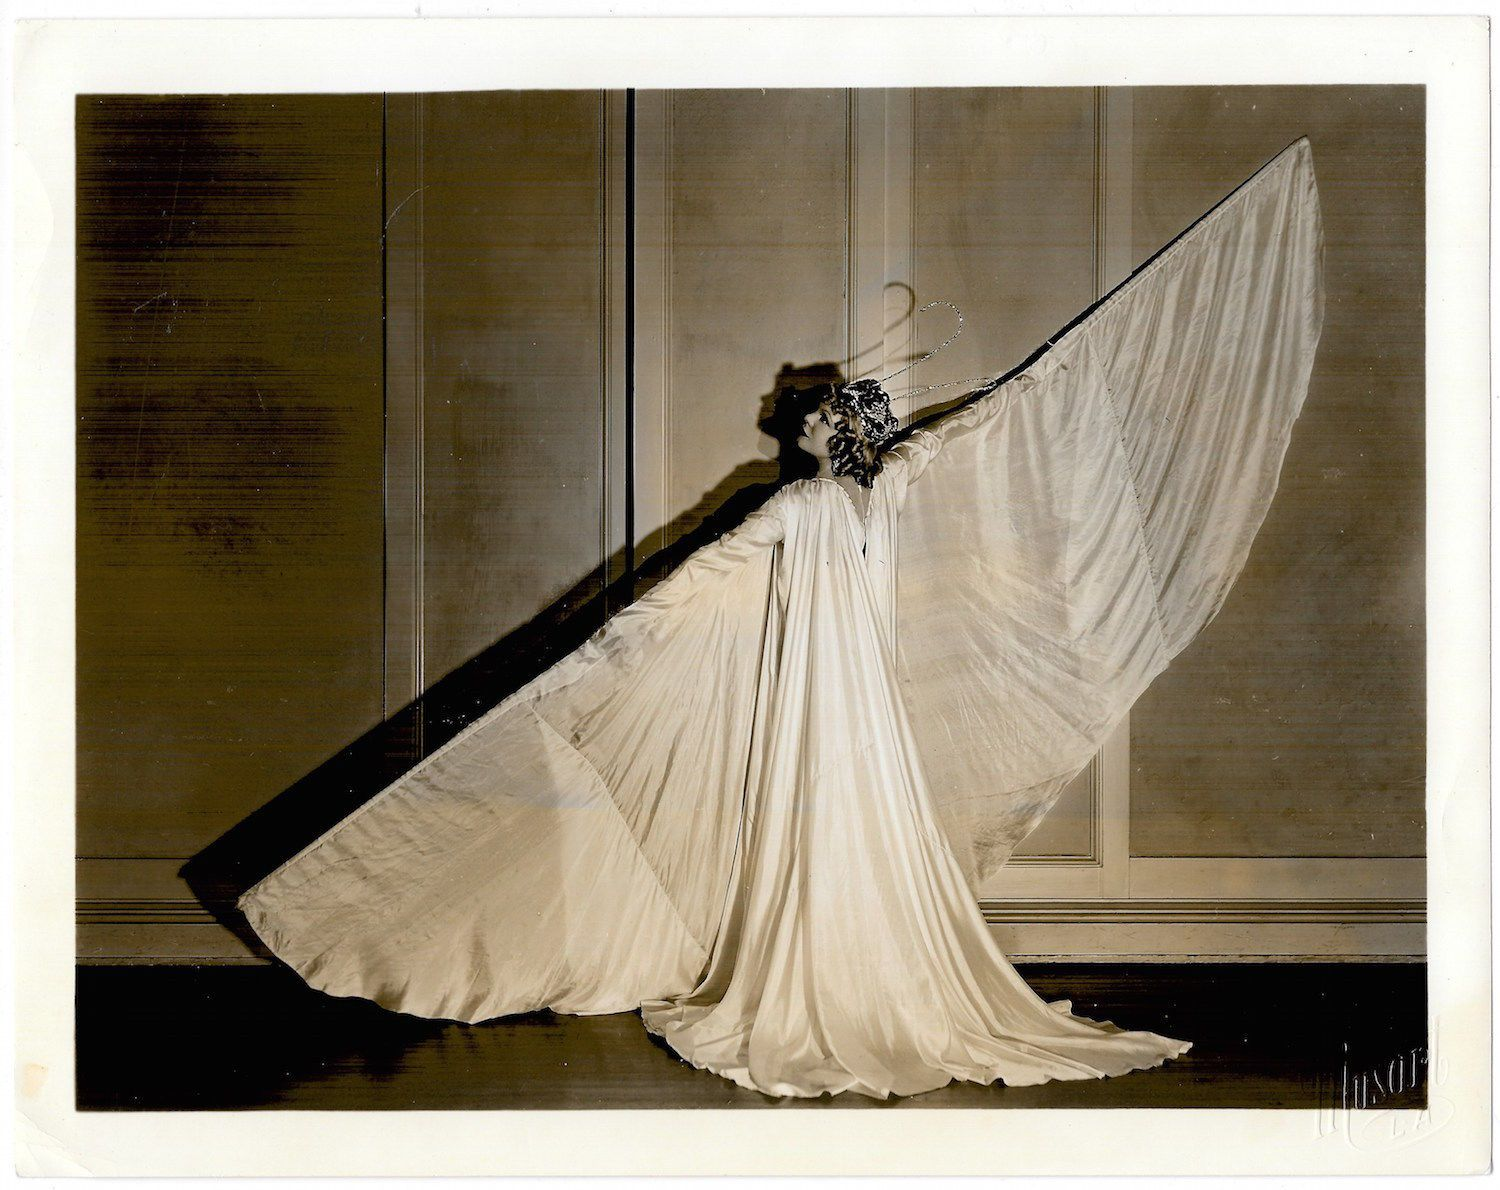 Portrait Photograph of Dancer Donna Day~97186  in Collectibles, Photographic Images, Vintage & Antique (Pre-1940), Other Antique Photographs | eBay